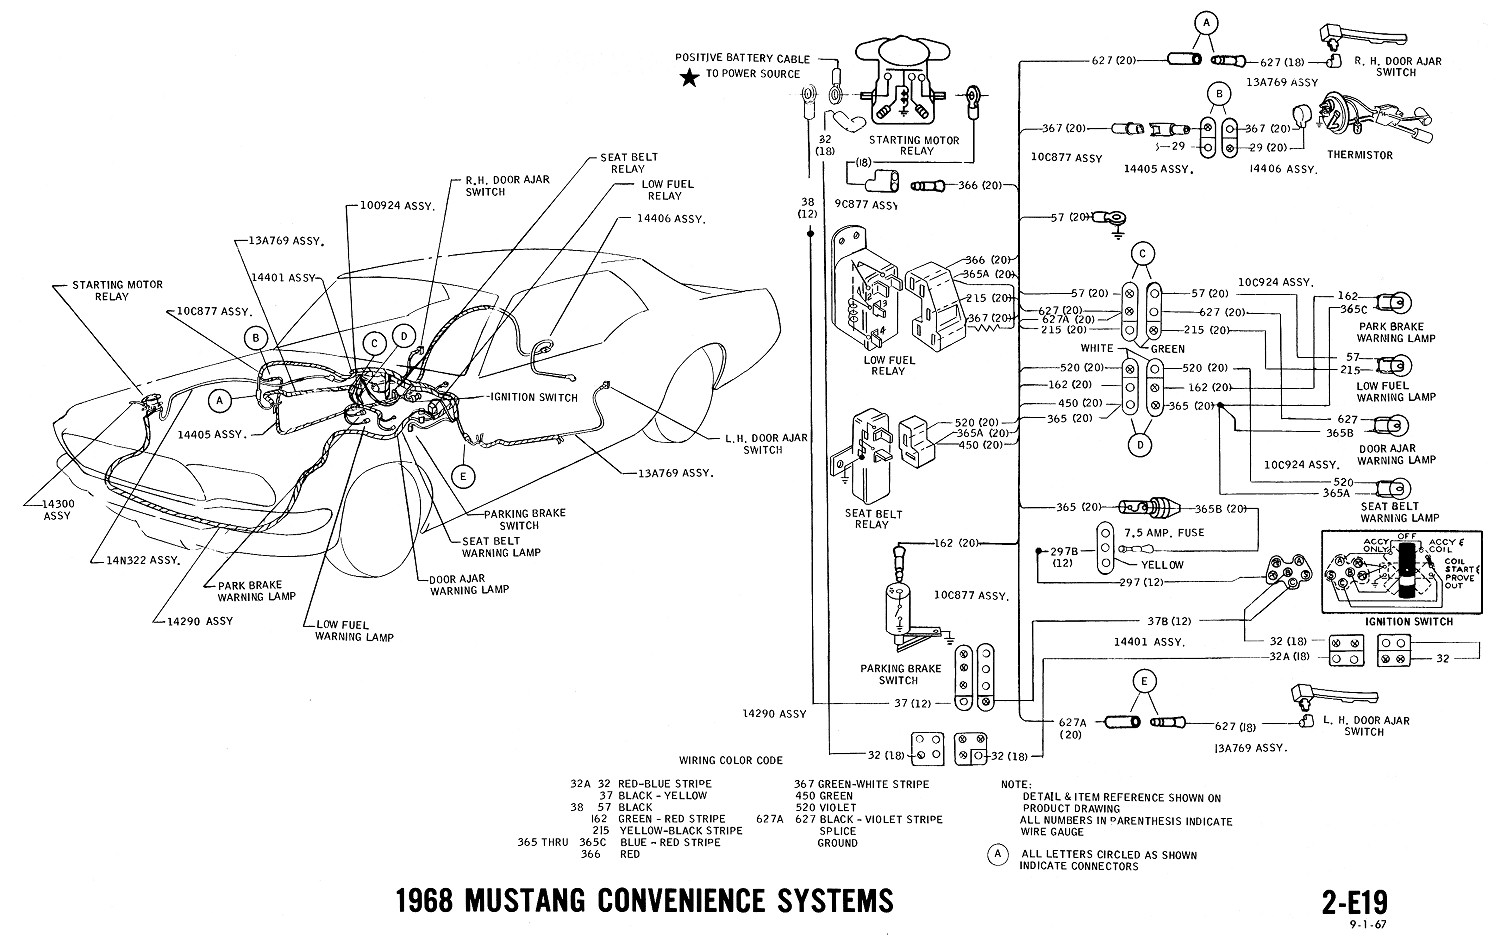 Wiring Diagram For A 1968 Ford Mustang Just Wiring Data 1970 Ford Torino  Wiring-Diagram Heater Wiring Diagram 1968 Ford Galaxie